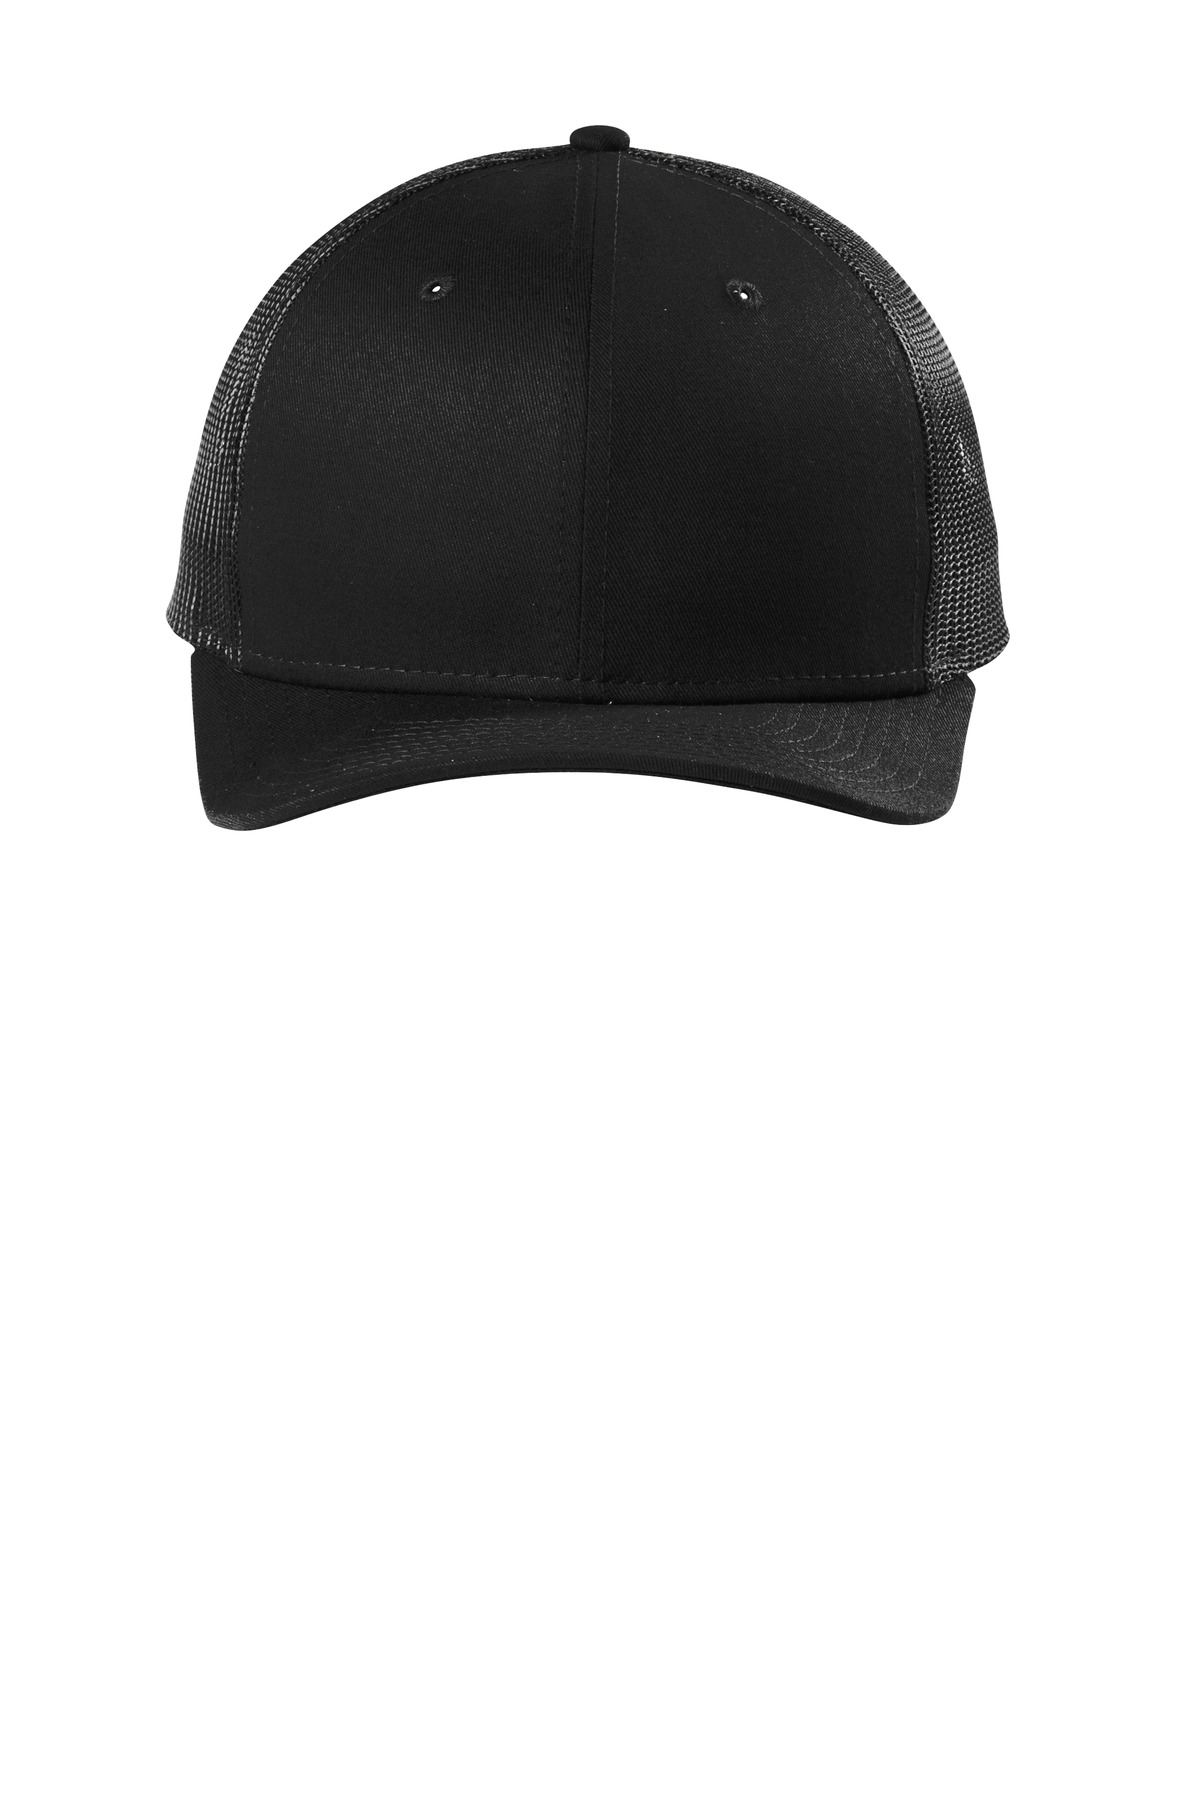 New Era  ®   Snapback Low Profile Trucker Cap   NE207 - Black